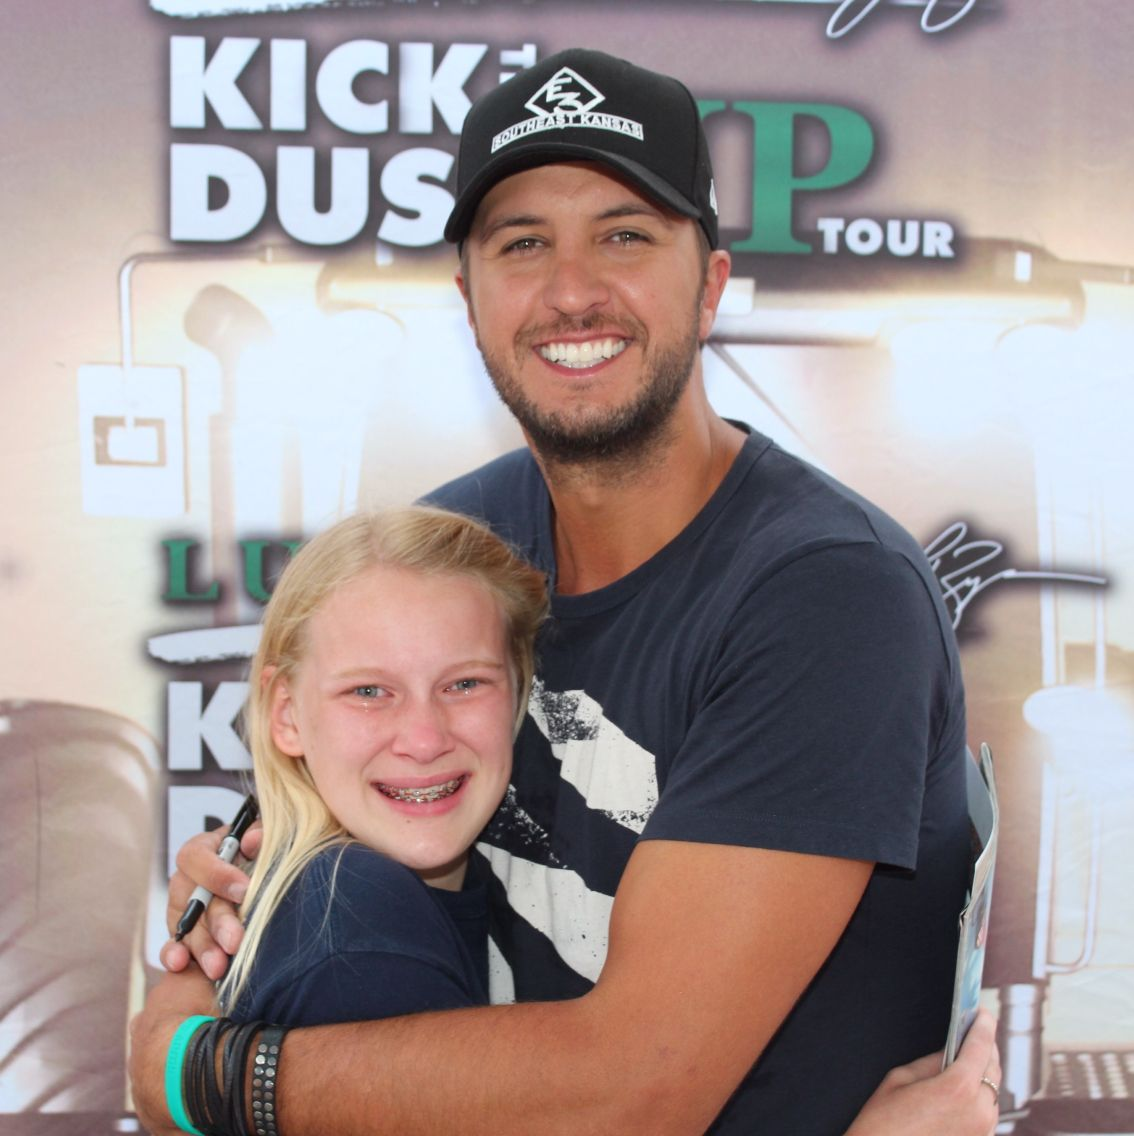 Luke bryan meet and greet luke bryan pinterest luke bryan luke bryan meet and greet m4hsunfo